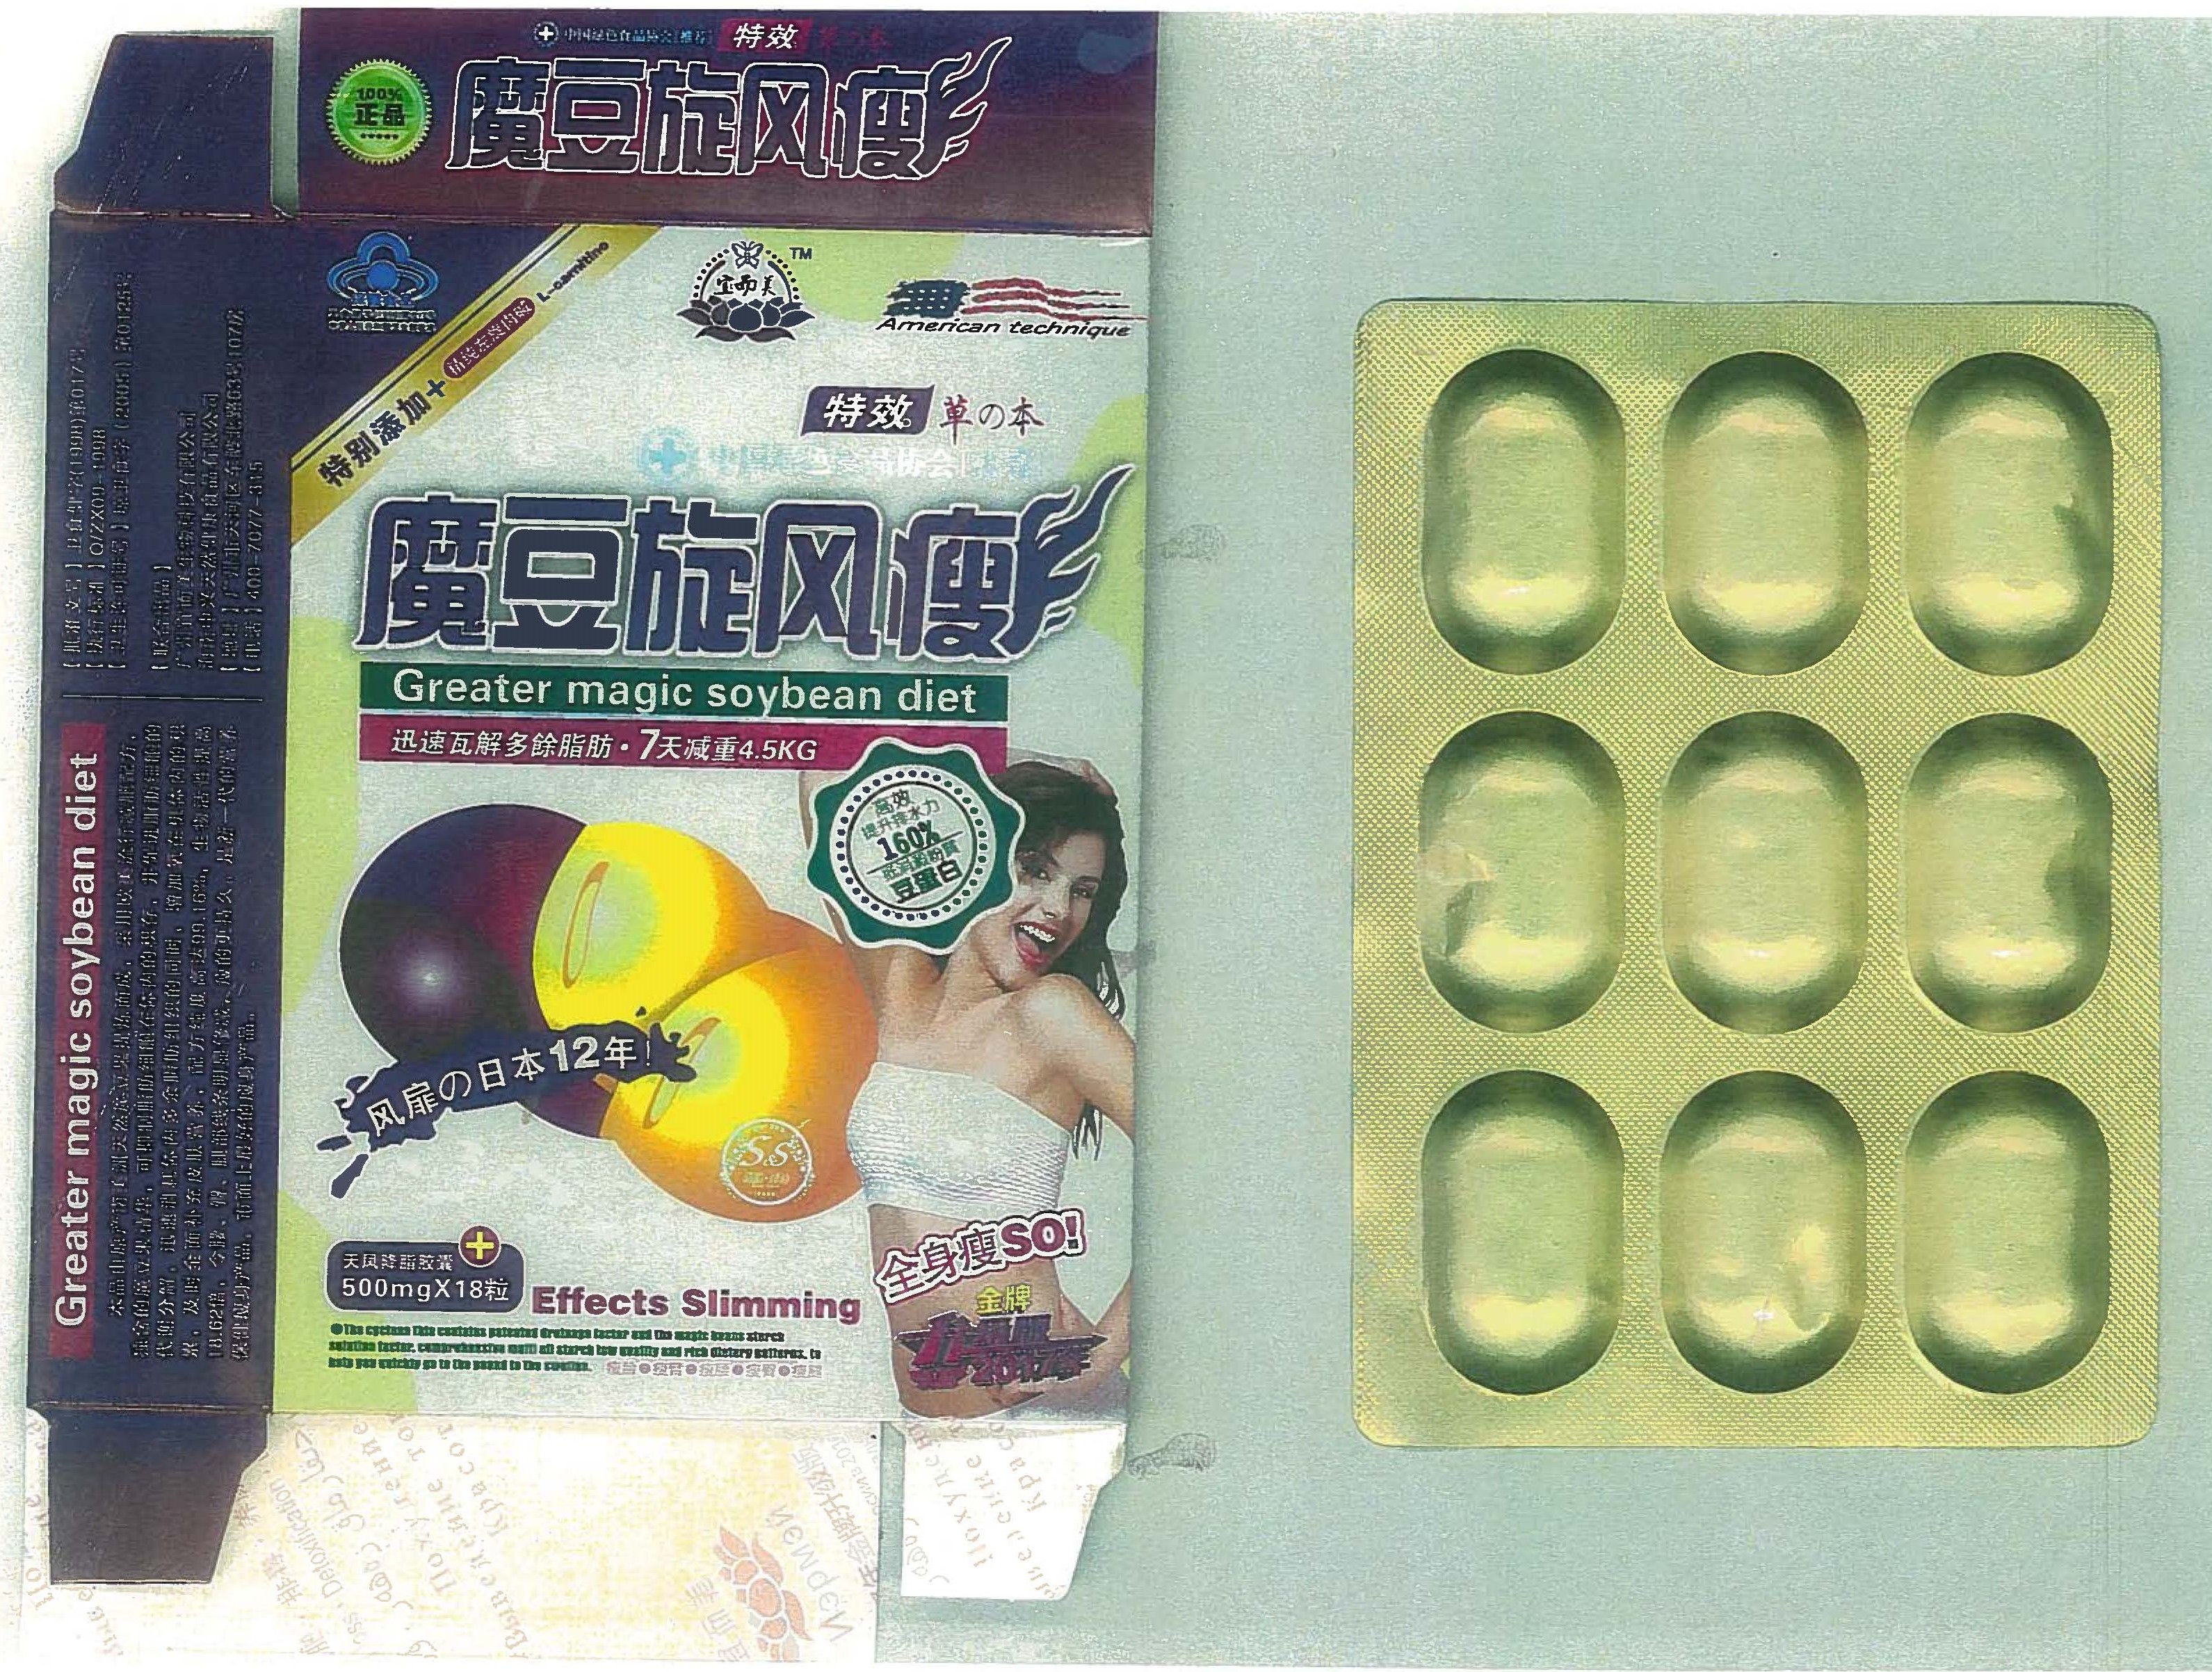 Image of the illigal product: Greater Magic Soybean Diet